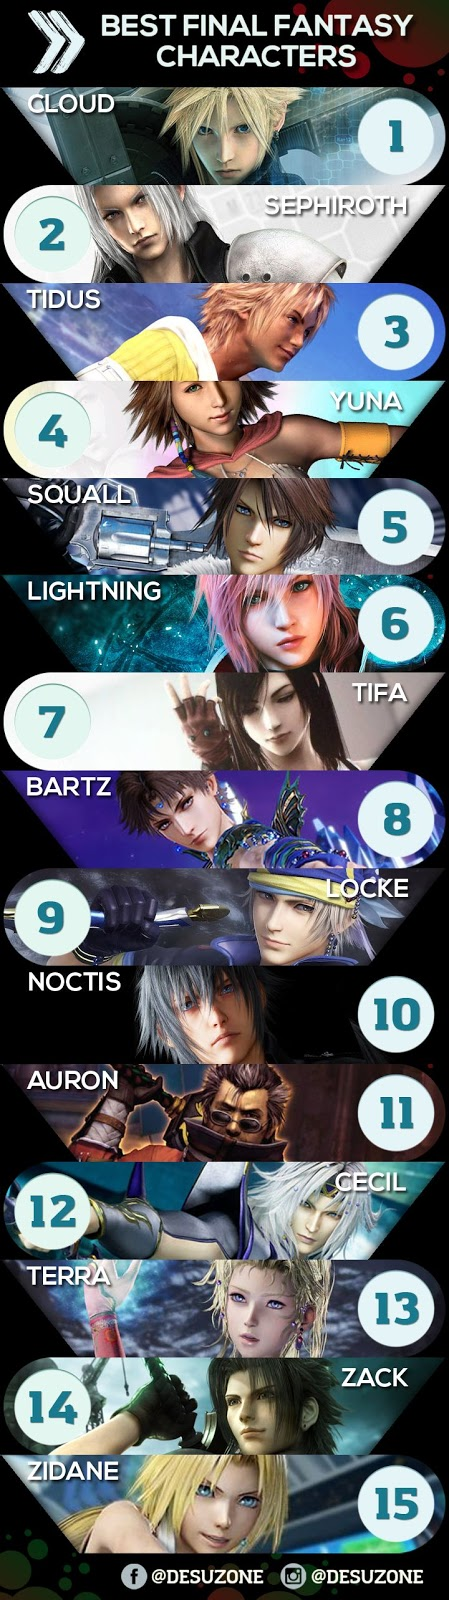 Most Popular Final Fantasy Characters Chart